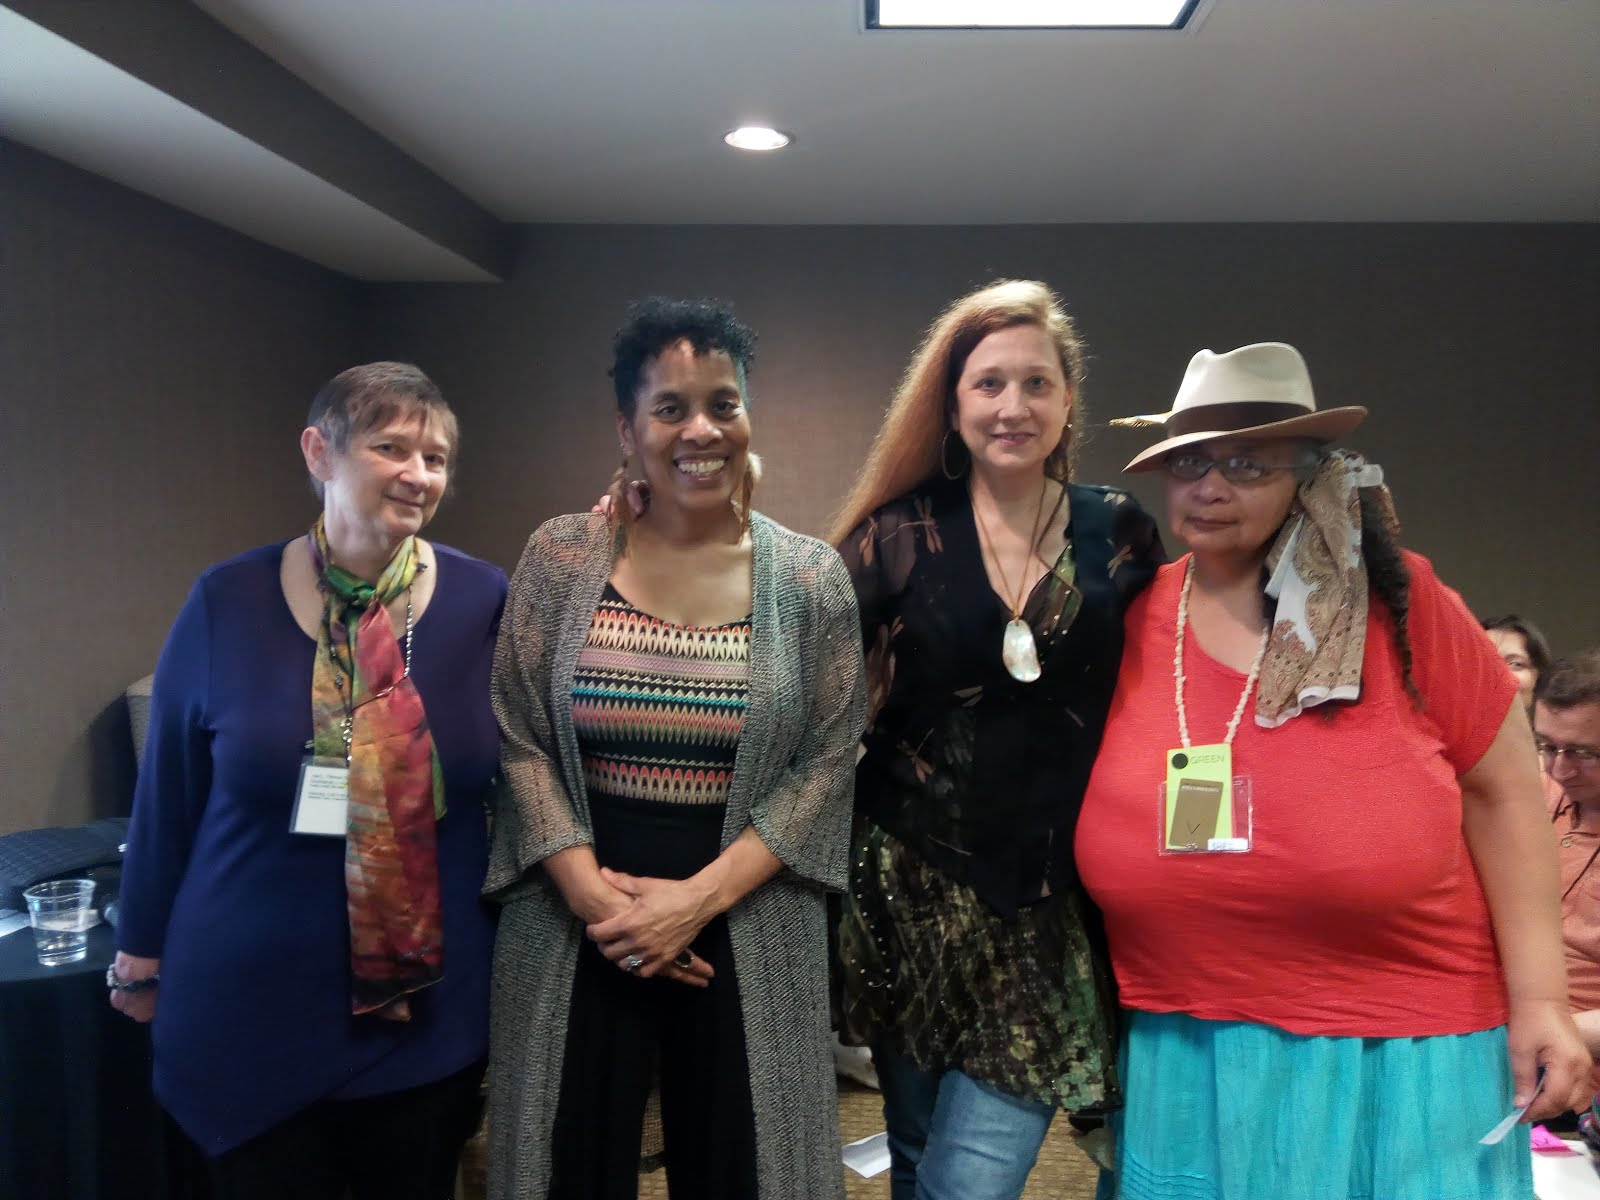 A photo of Timmi Duchamp, Andrea Hairston, Pan Morigan and Nisi Shawl after a reading.